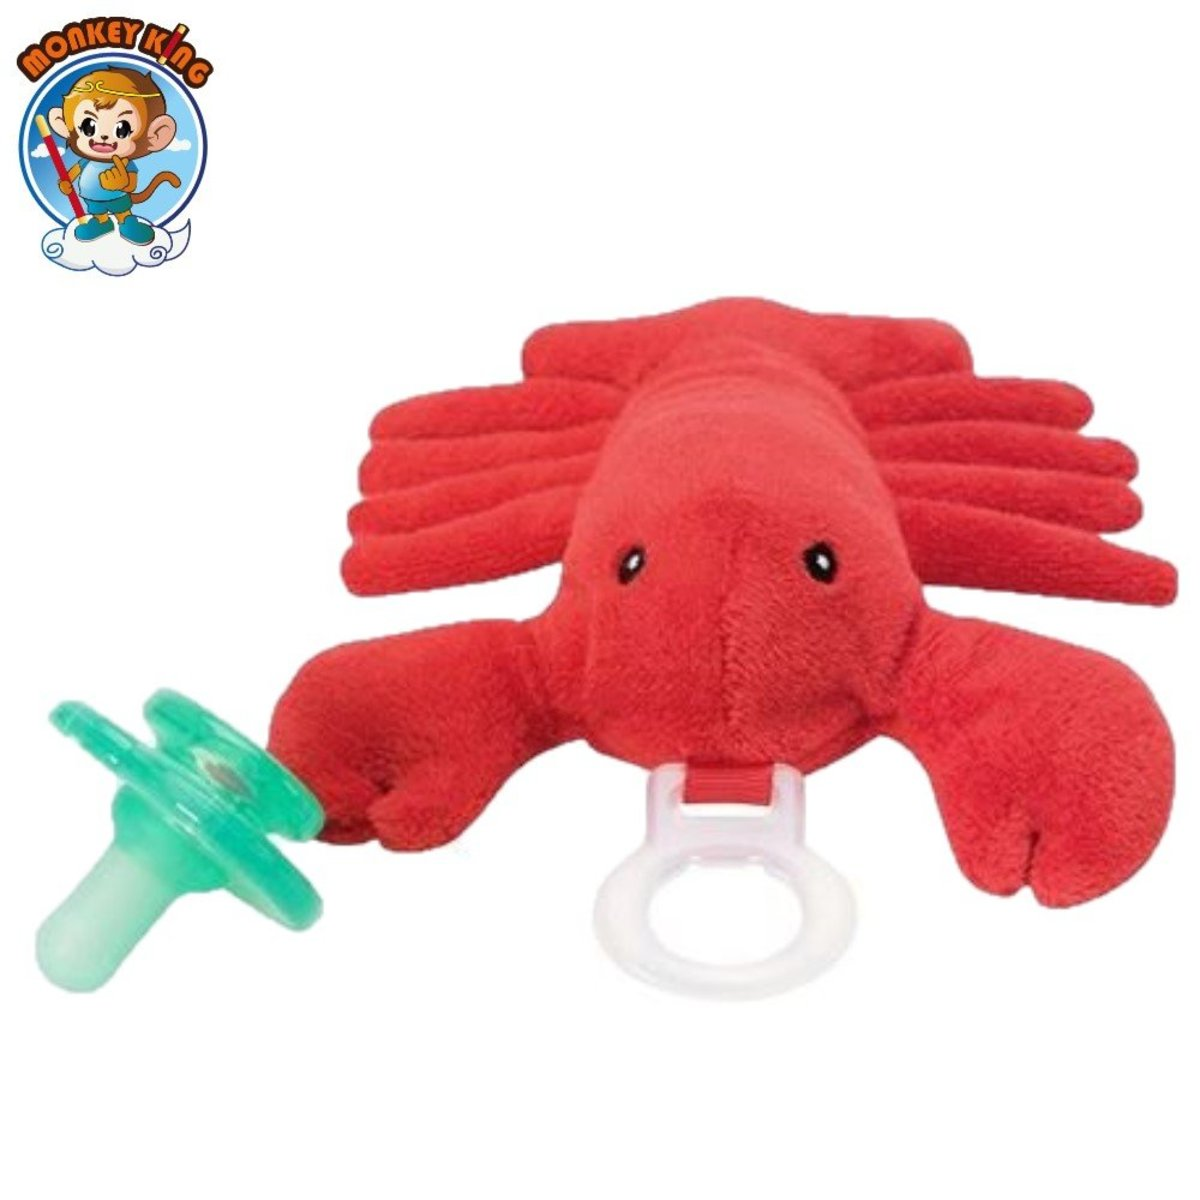 Paci-Plushies Buddies Pacifier Holder - Red Crab